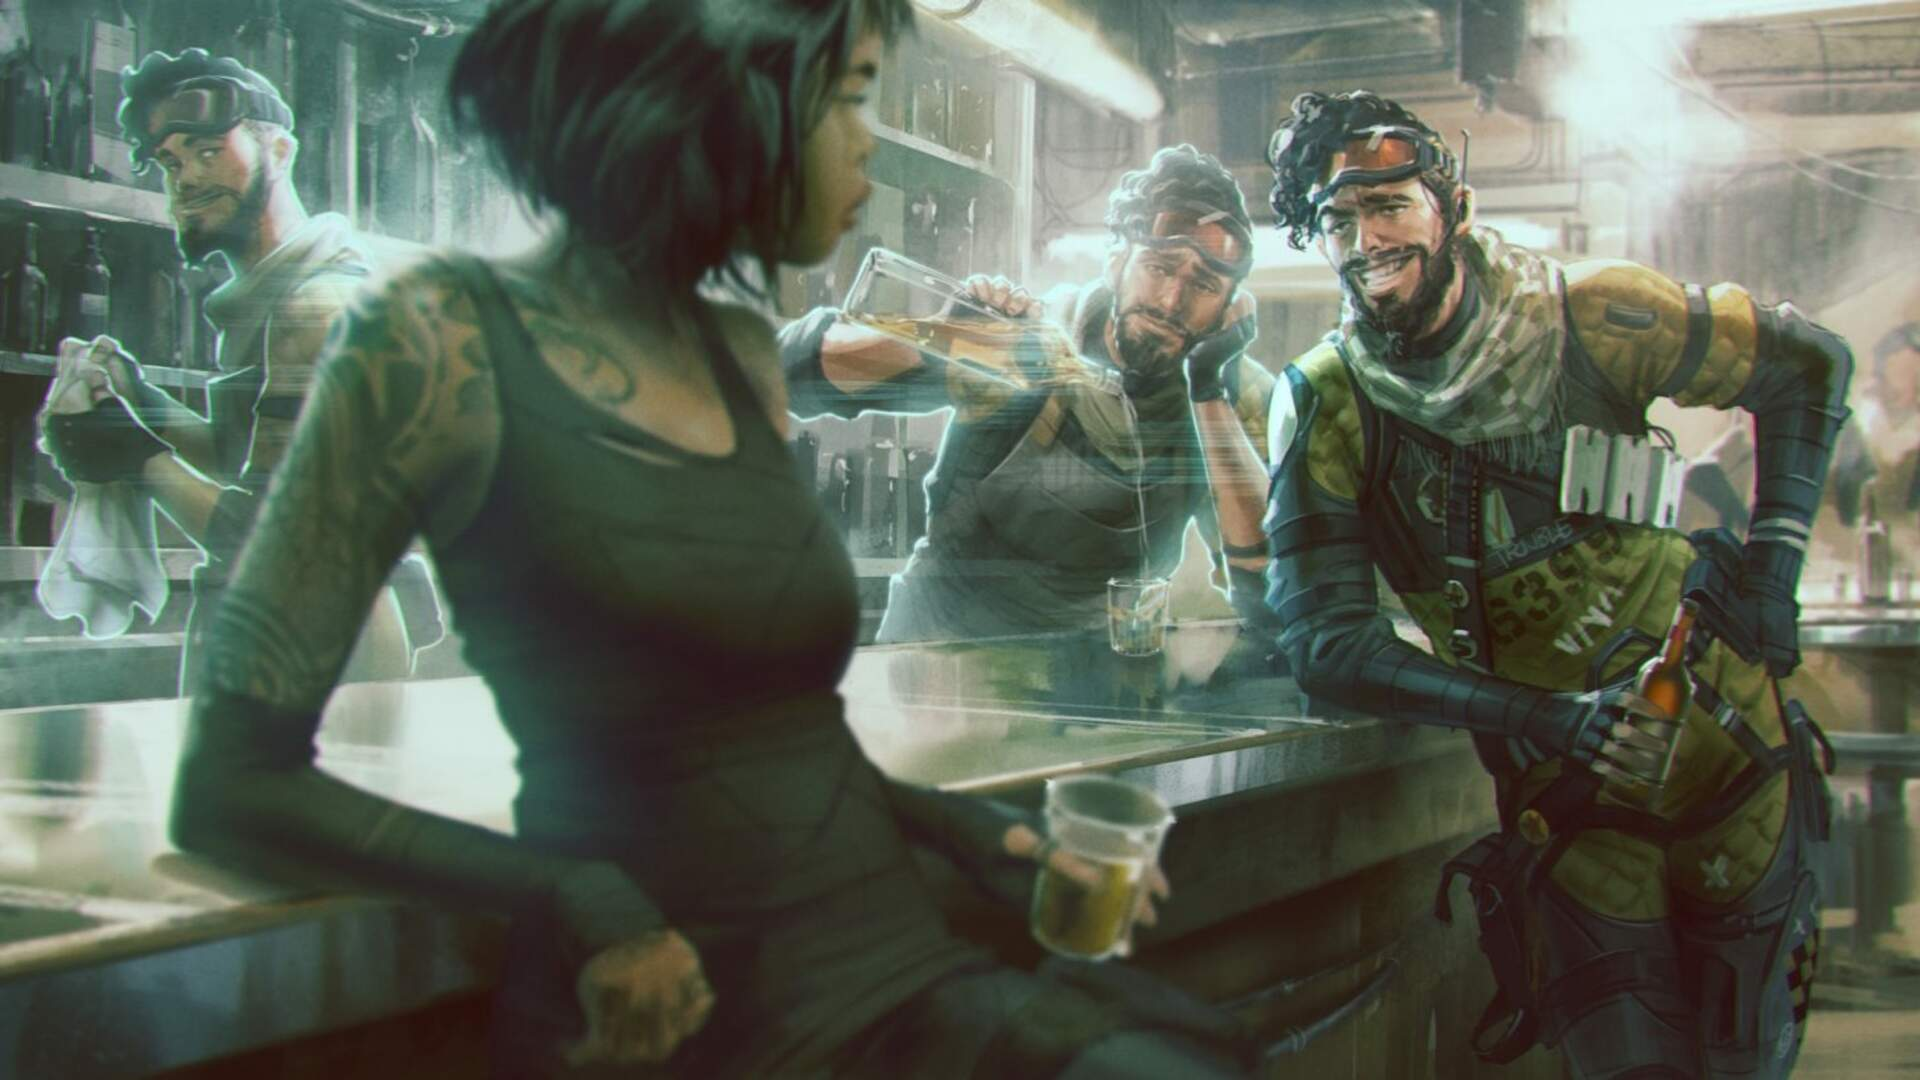 Apex Legends Datamine Reveals Potential New Characters In Addition To Previously Leaked Octane [Update: Respawn Comments]